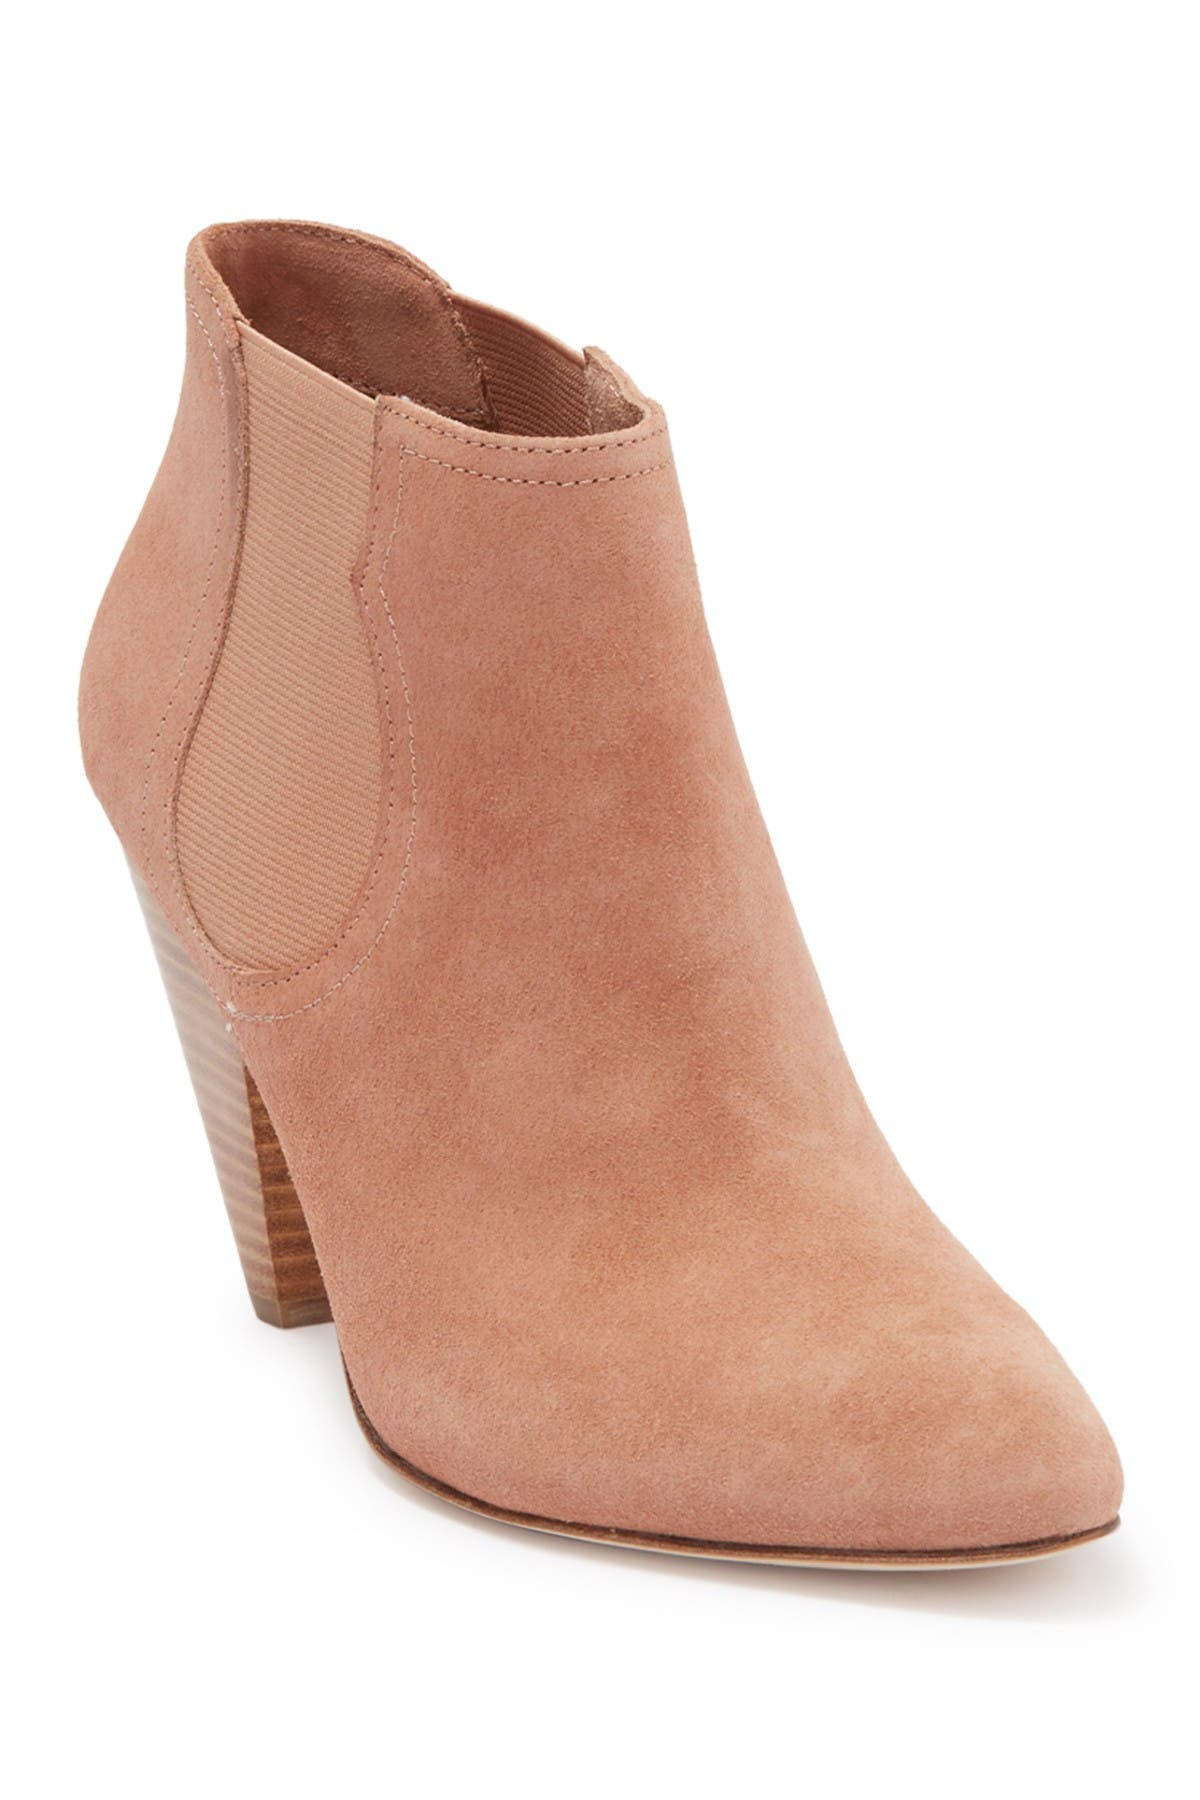 Image of Joie Gabija Suede Ankle Boot